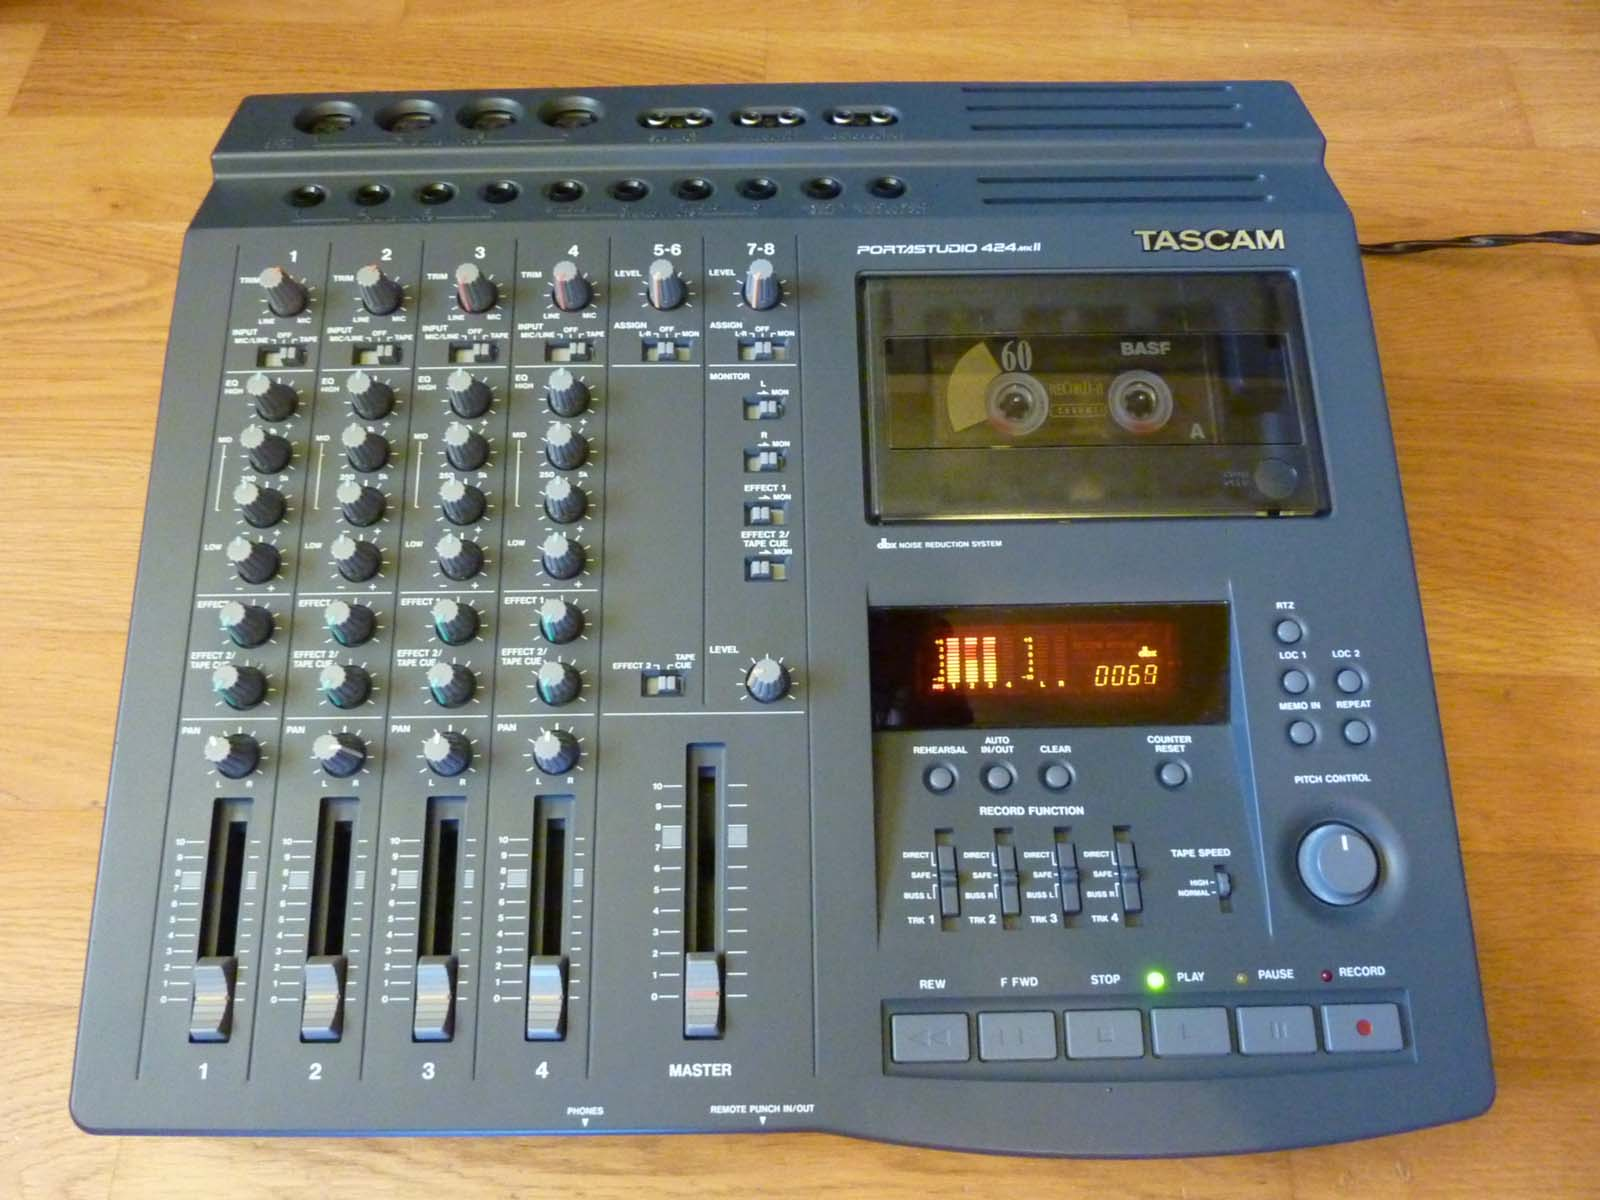 Tascam portastudio 424 mkii owners manual.